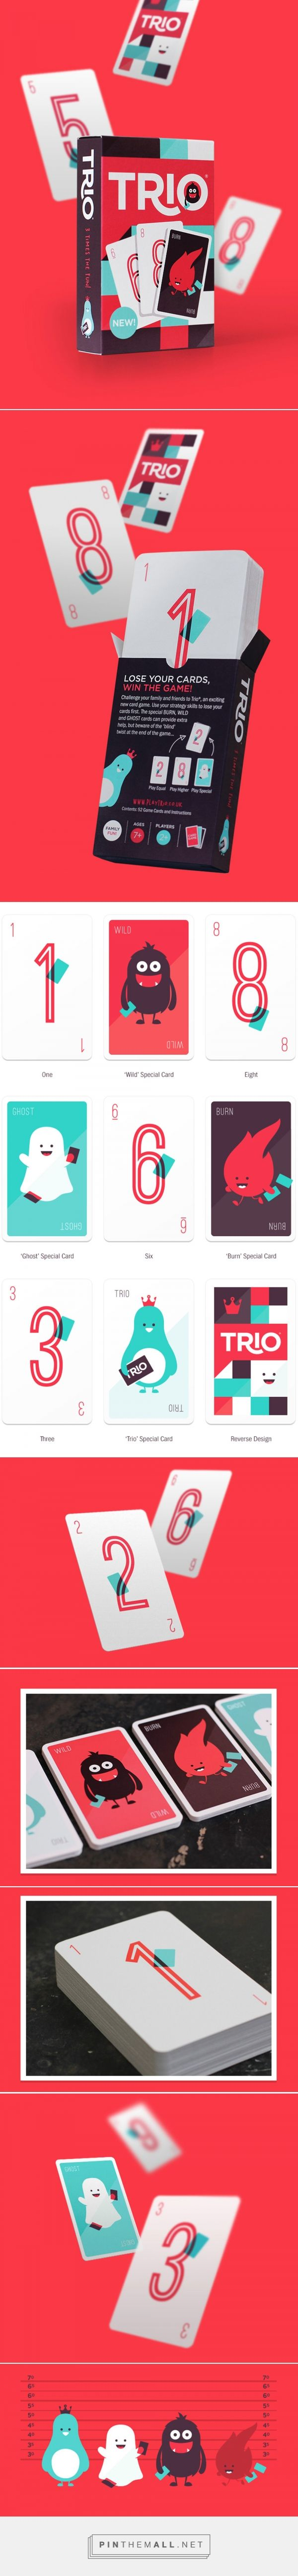 Trio Card Game — The Dieline - Branding & Packaging Design http://www.thedieline.com/blog/2014/2/4/trio-card